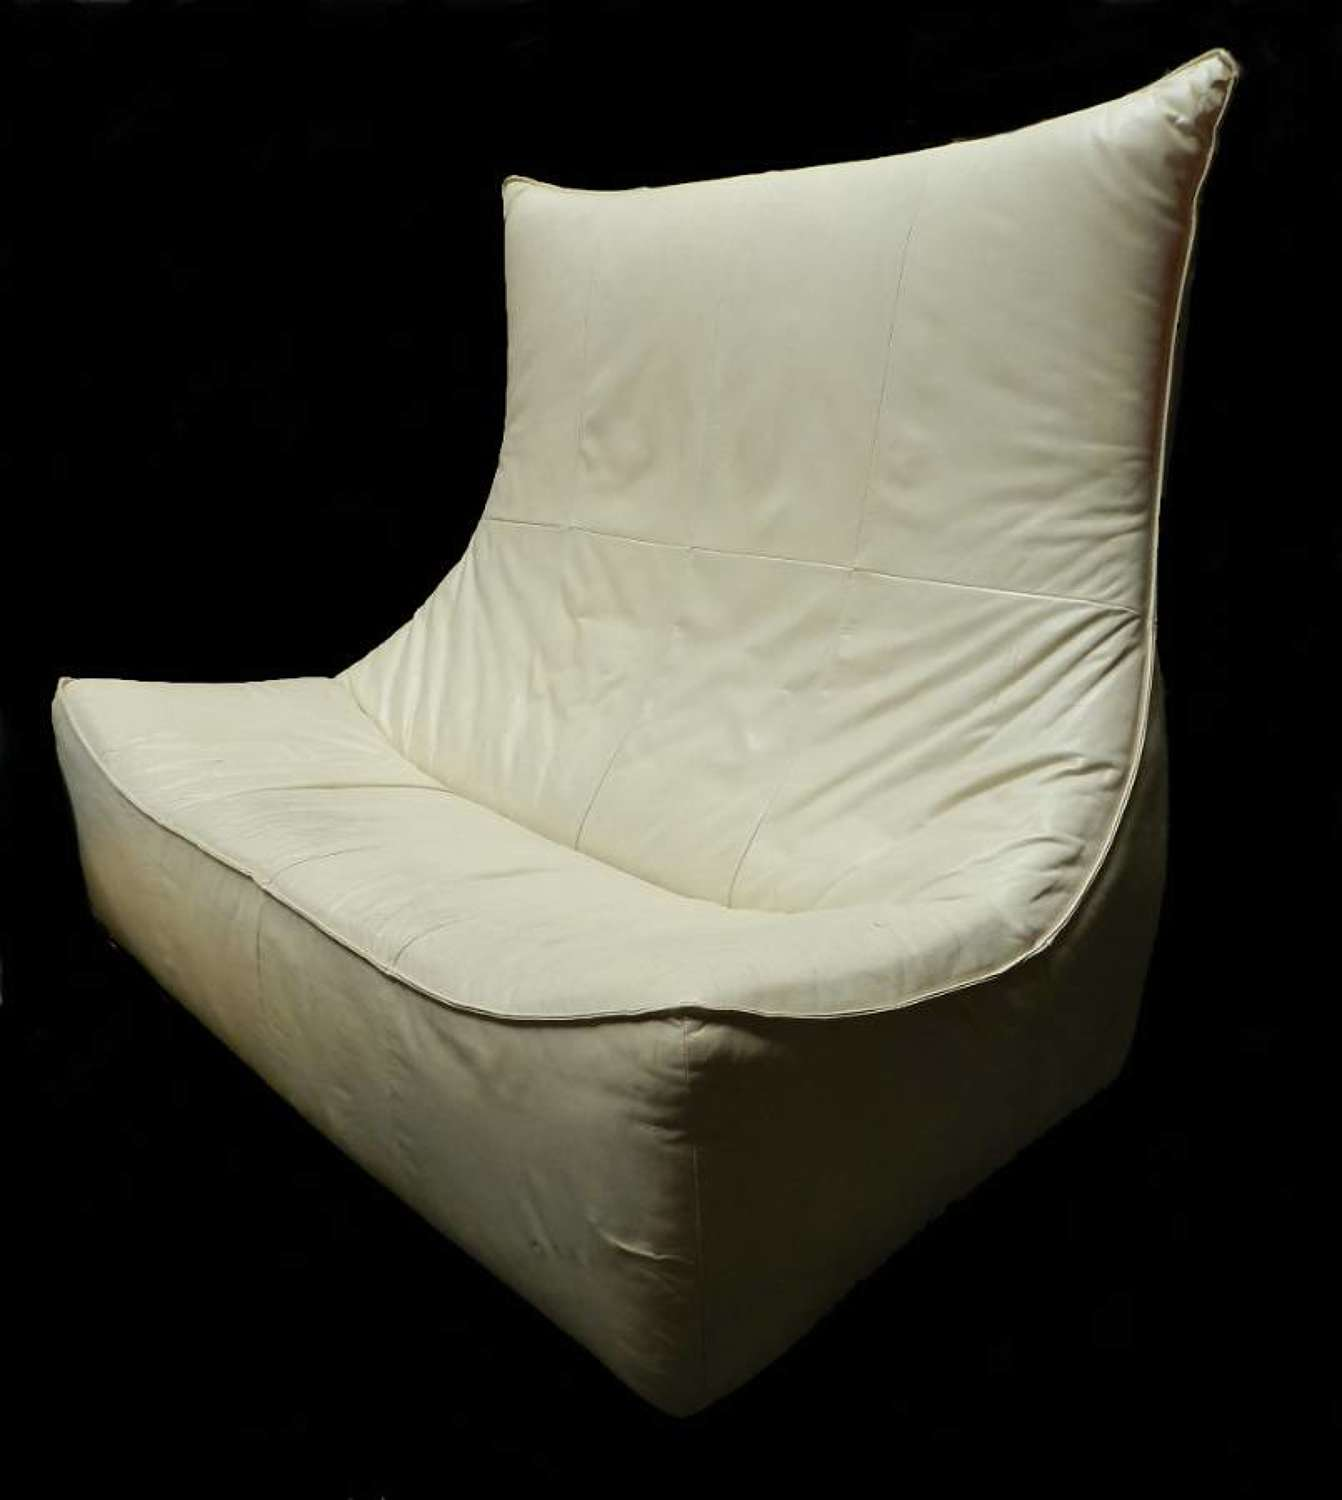 The Rock Gerard Van Den Berg for Montis Leather Sofa 1970s Matching Single Lounge Chair also available